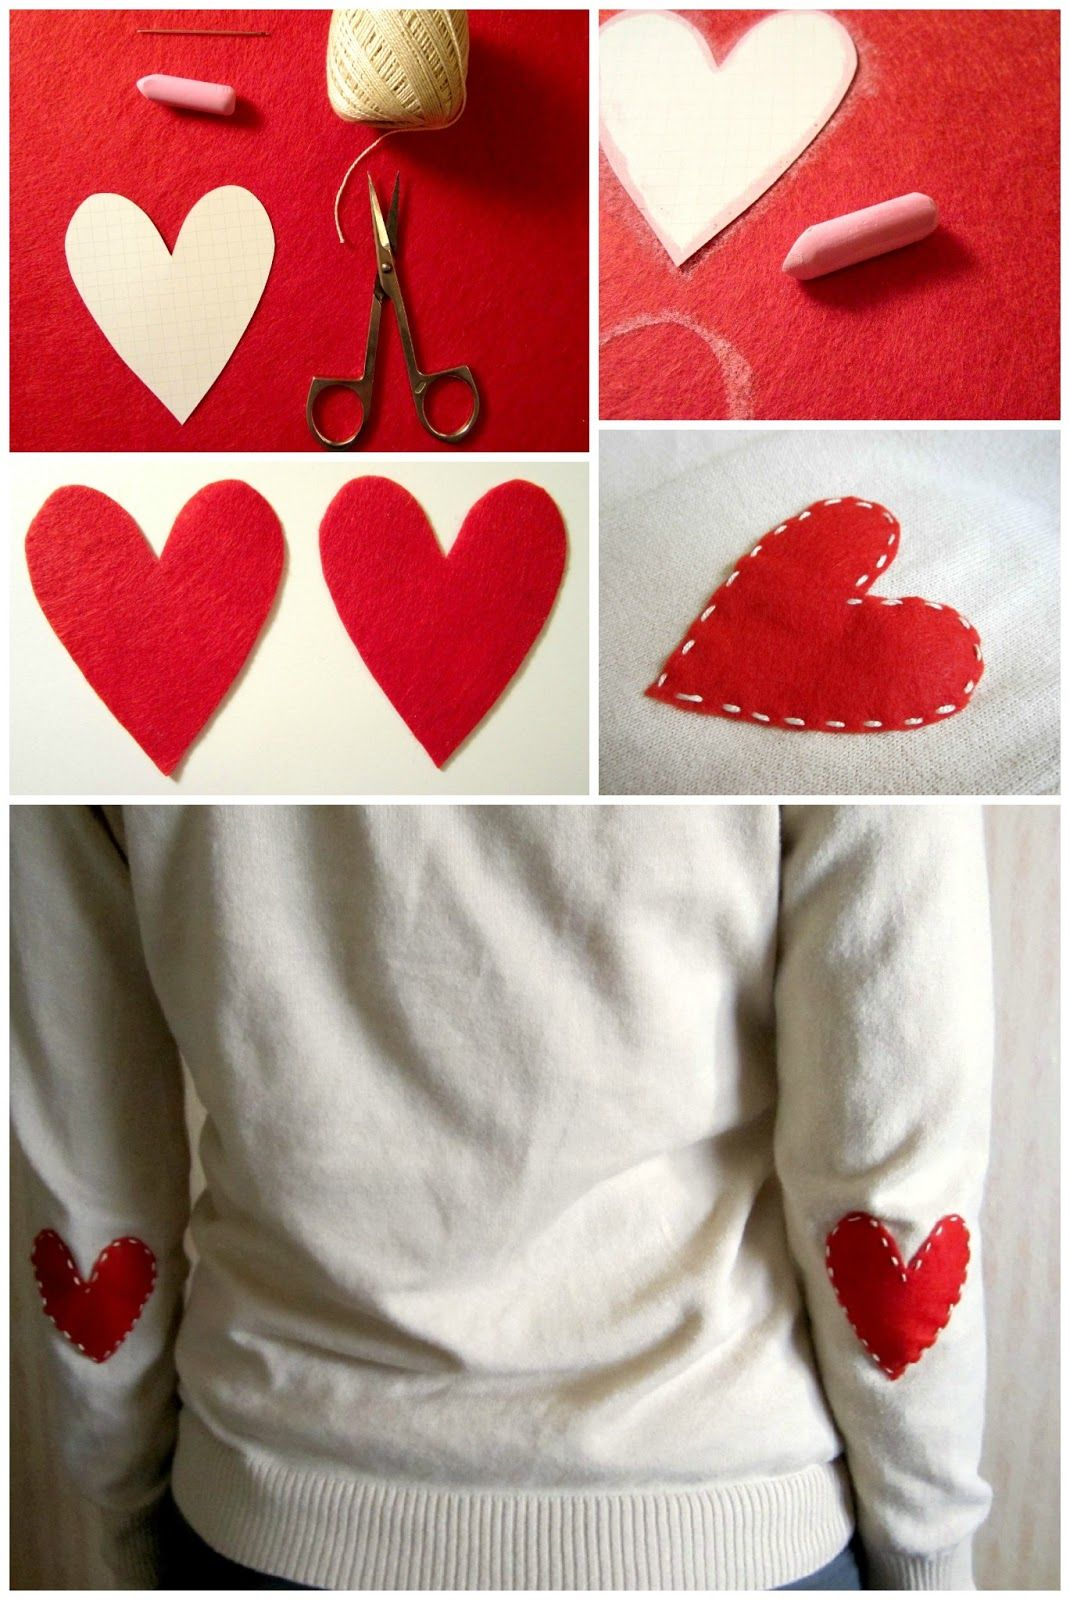 Heart+patch+DIY.jpg (1070×1600)